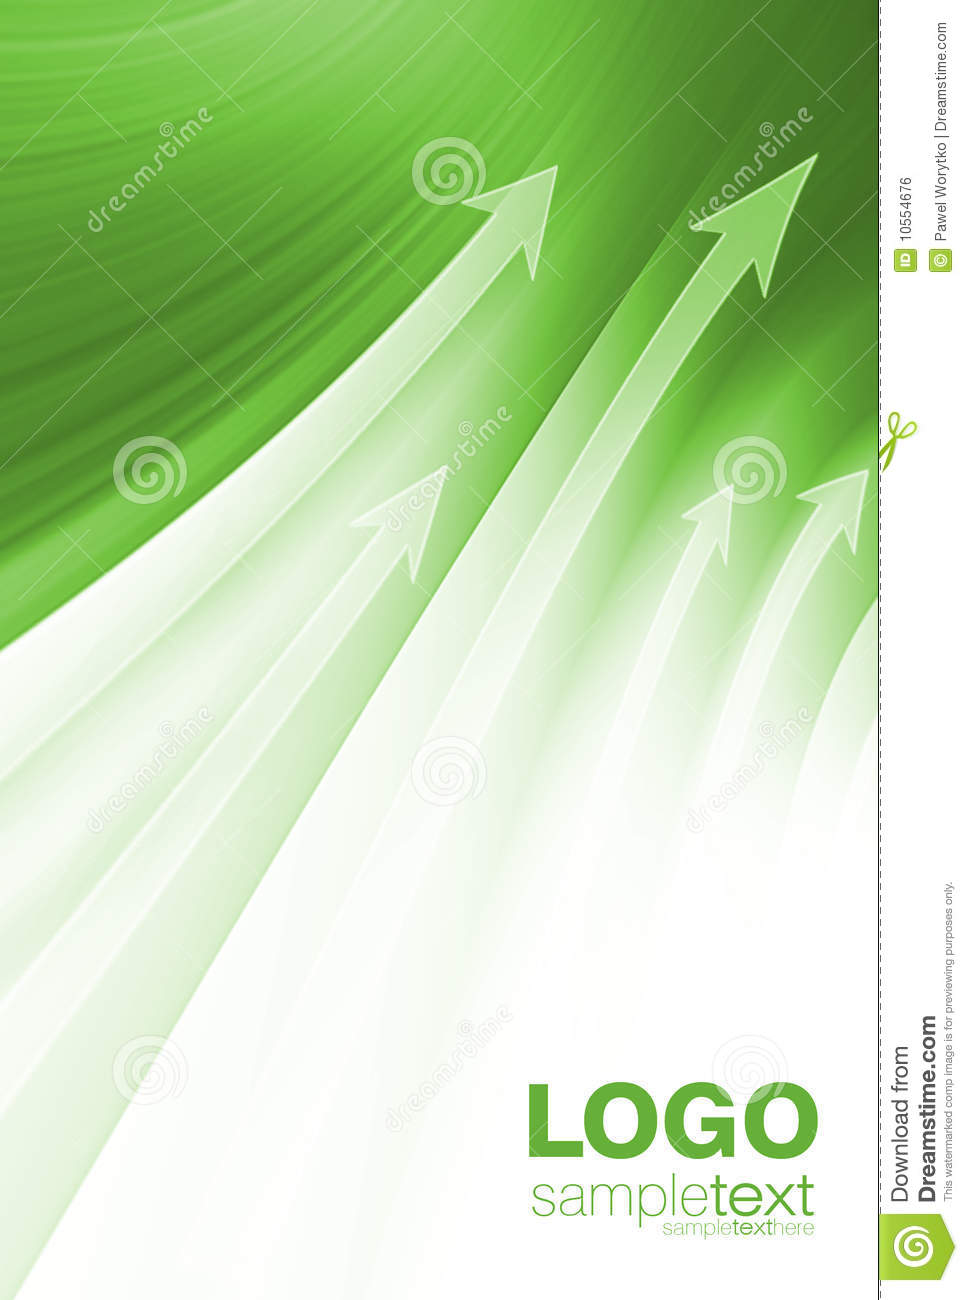 arrows background royalty free stock image image 10554676